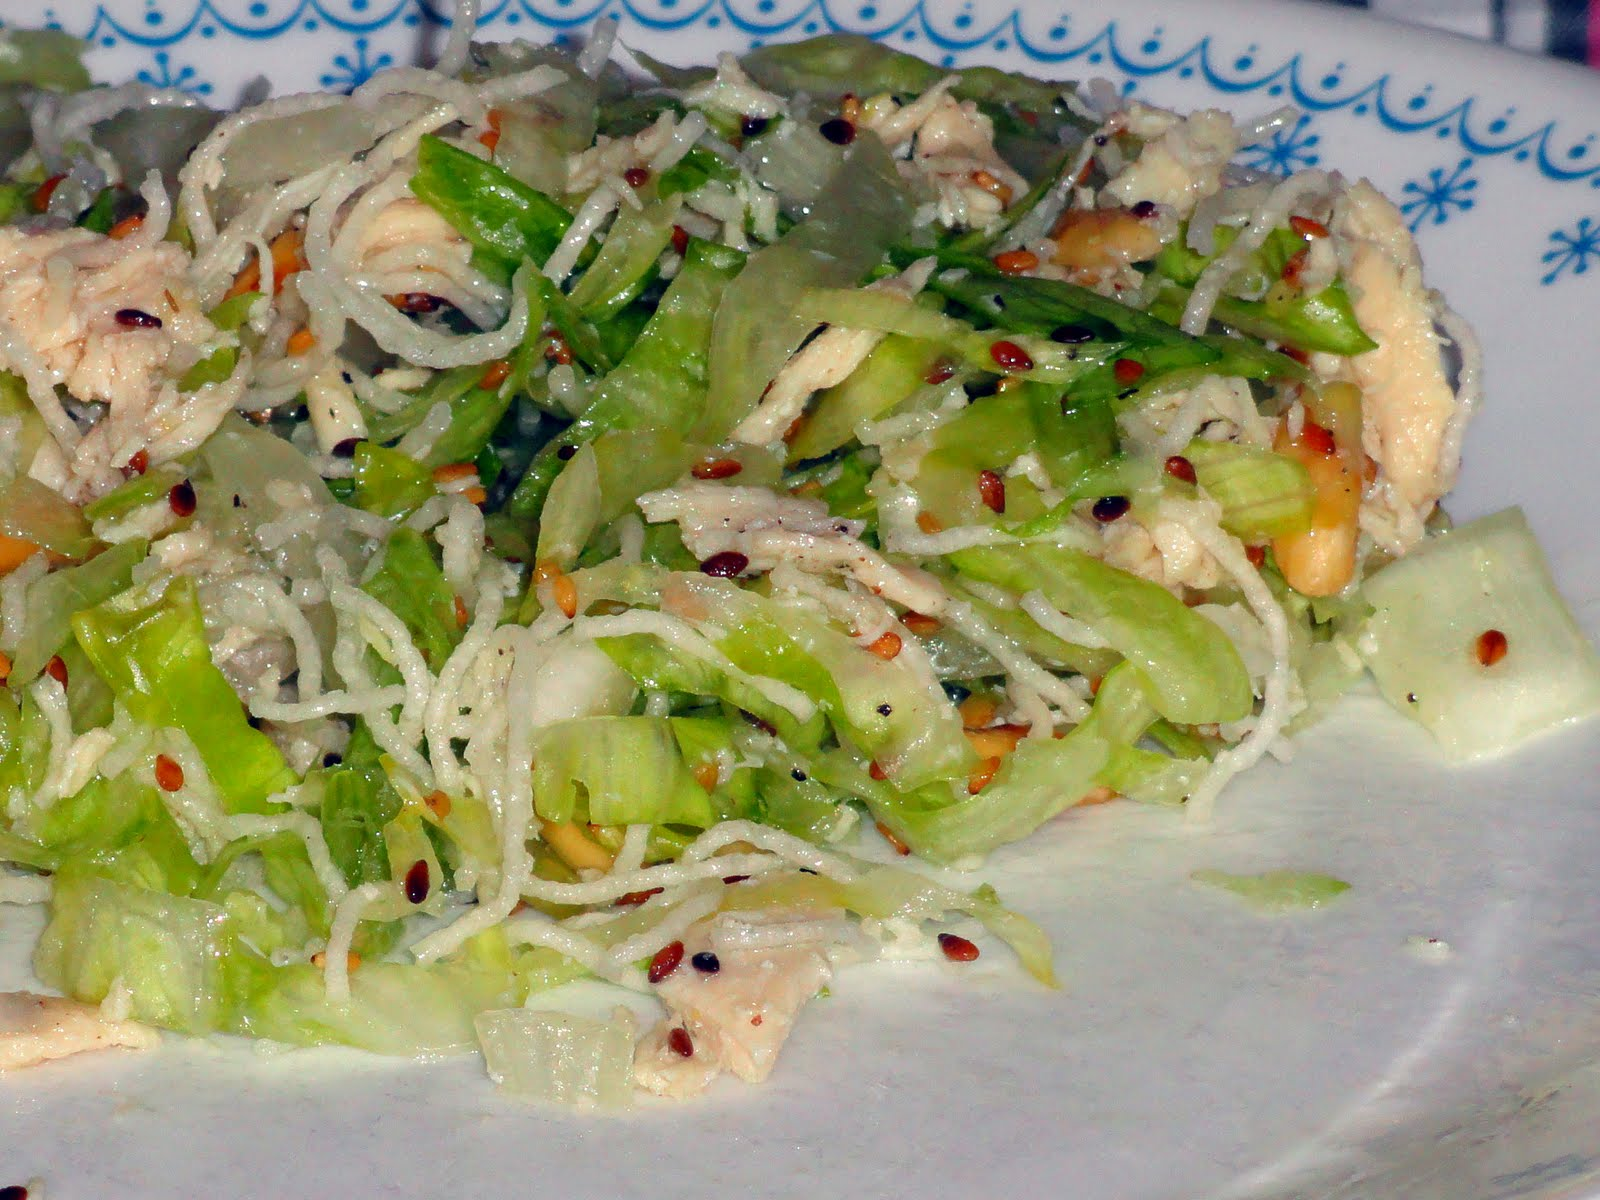 Rogers Family Recipes: Chinese Chicken Salad